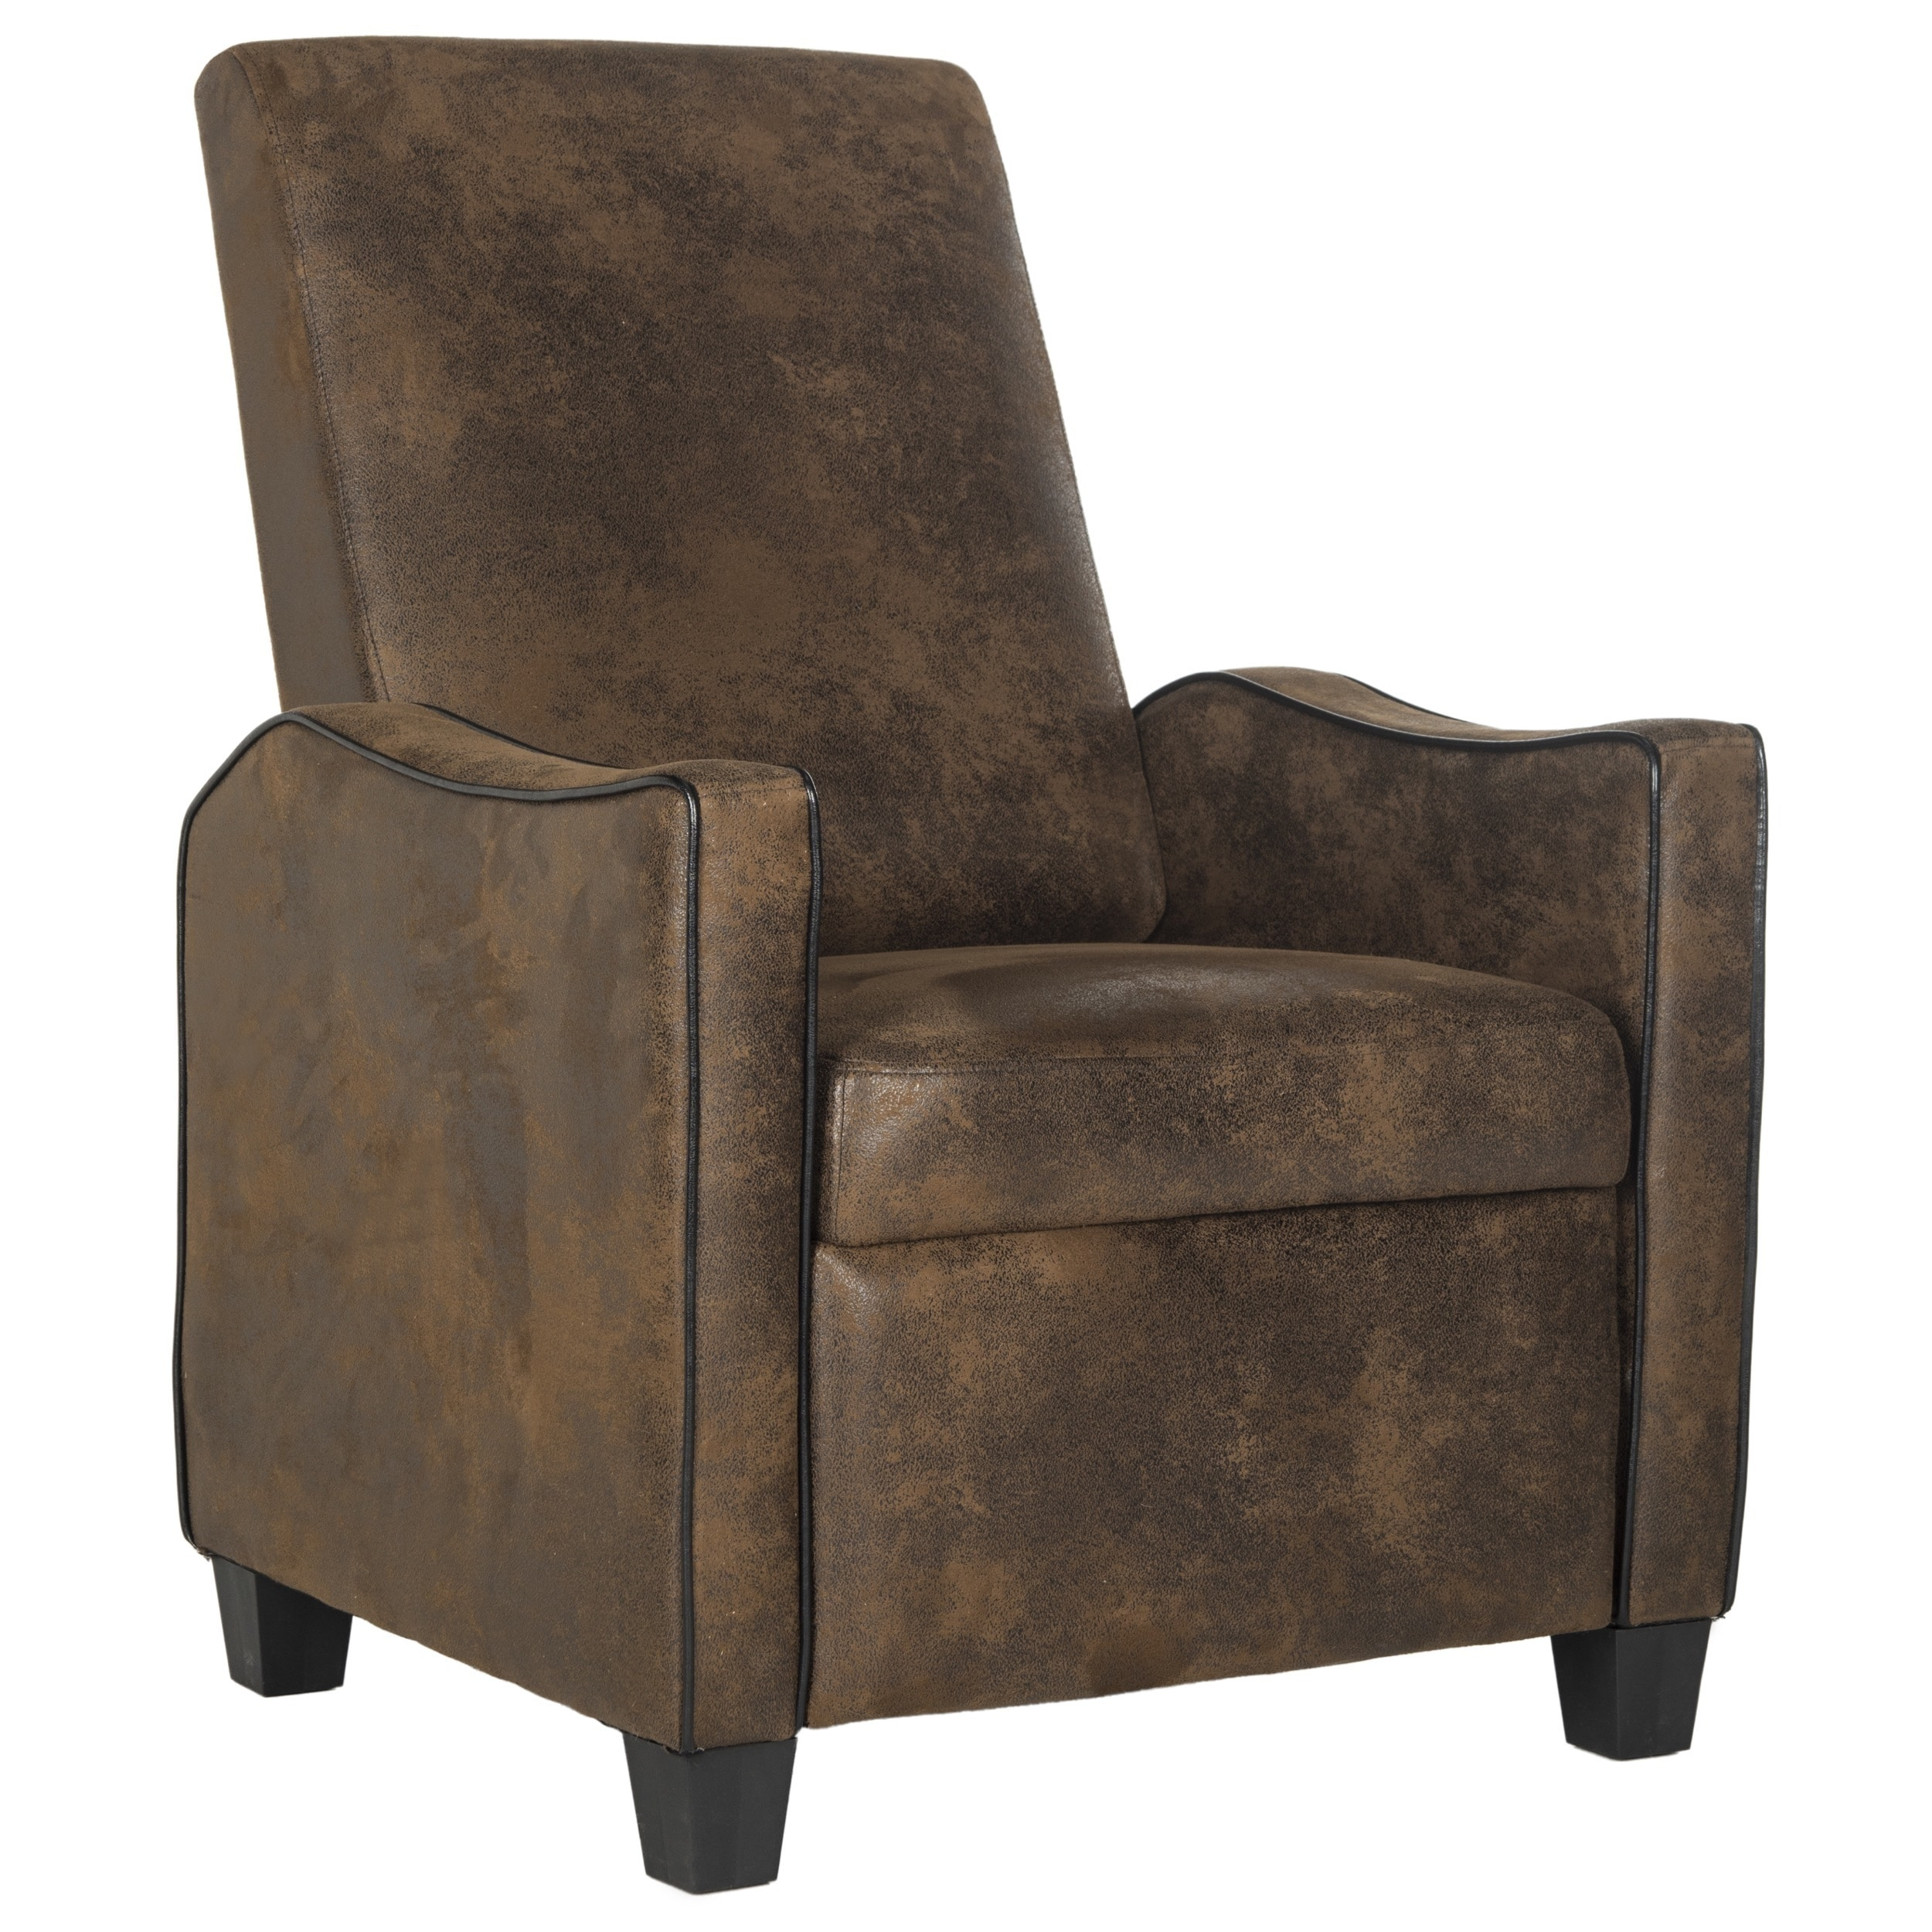 Superbe Shop Safavieh Holden Vintage Brown Recliner Chair   Free Shipping Today    Overstock.com   11417018